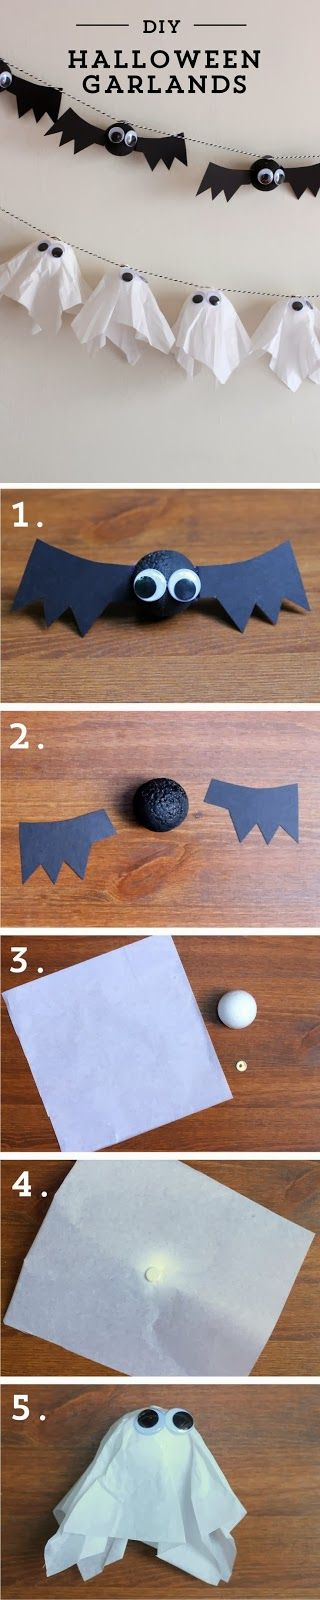 Halloween Bat Garland DIY Tutorial Project